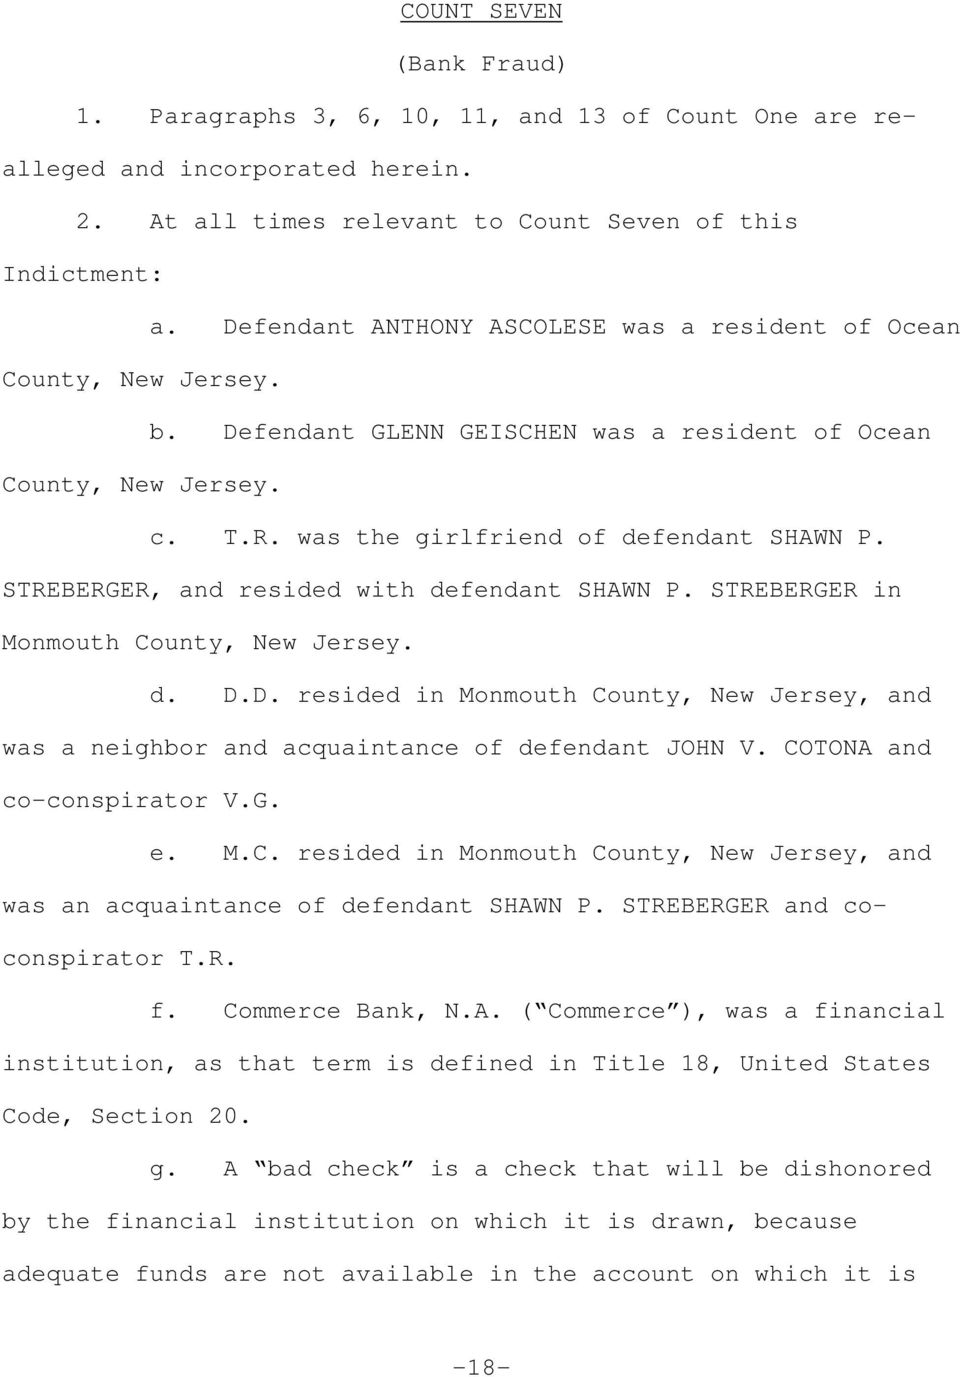 STREBERGER, and resided with defendant SHAWN P. STREBERGER in Monmouth County, New Jersey. d. D.D. resided in Monmouth County, New Jersey, and was a neighbor and acquaintance of defendant JOHN V.